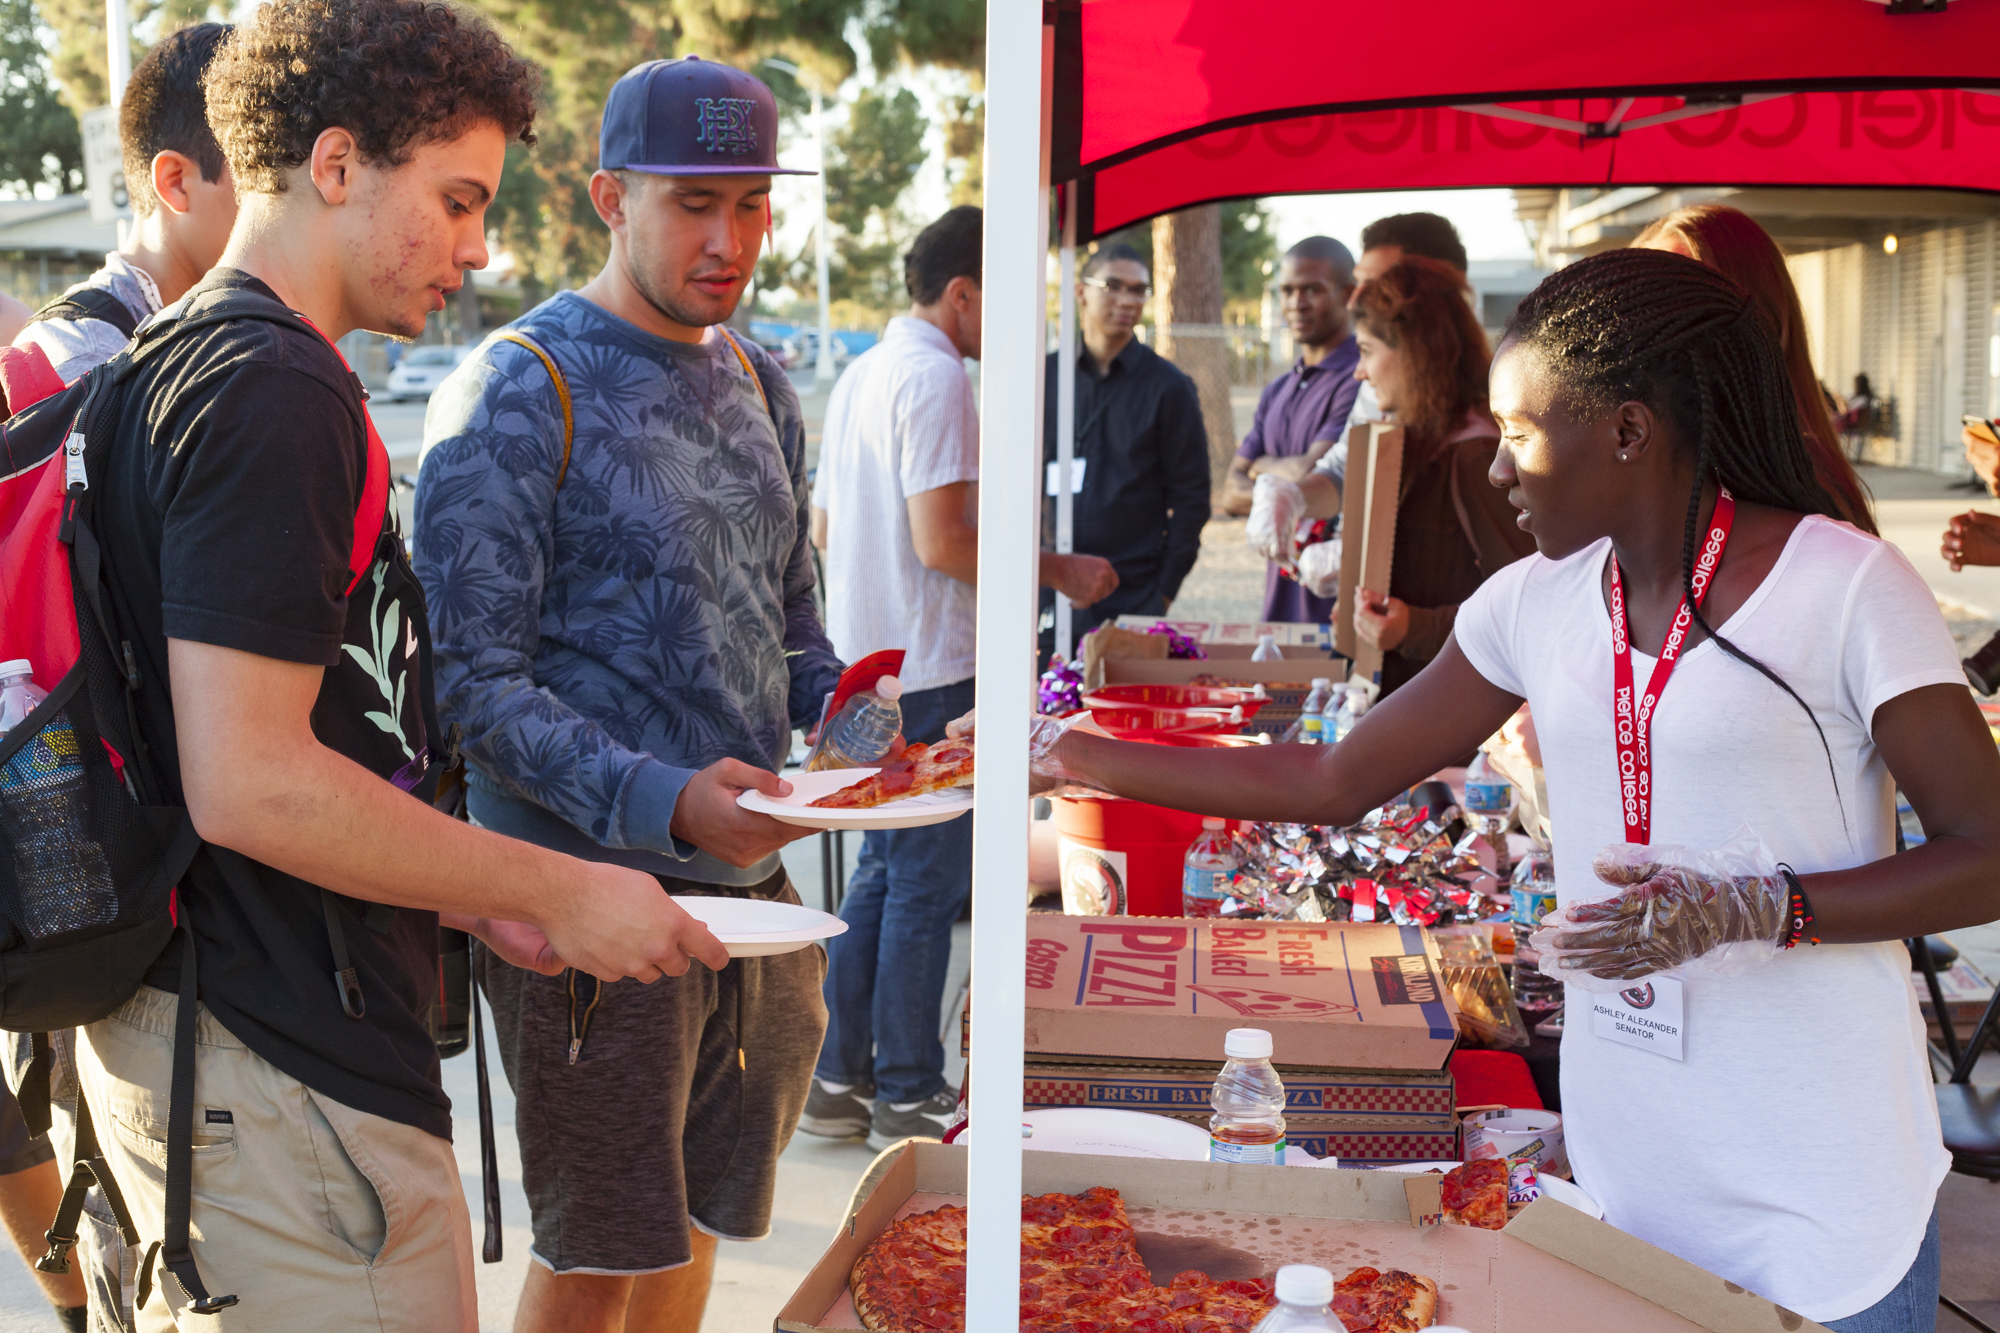 Ashely Alexander, ASO agriculture department senator, serves pizza to Joel Pagan and Jose Morfin at the ASO Volleyball Tailagate outside Pierce's South Gym on October 12, 2016 in Woodland Hills, California. Photo by Calvin B. Alagot / Roundup